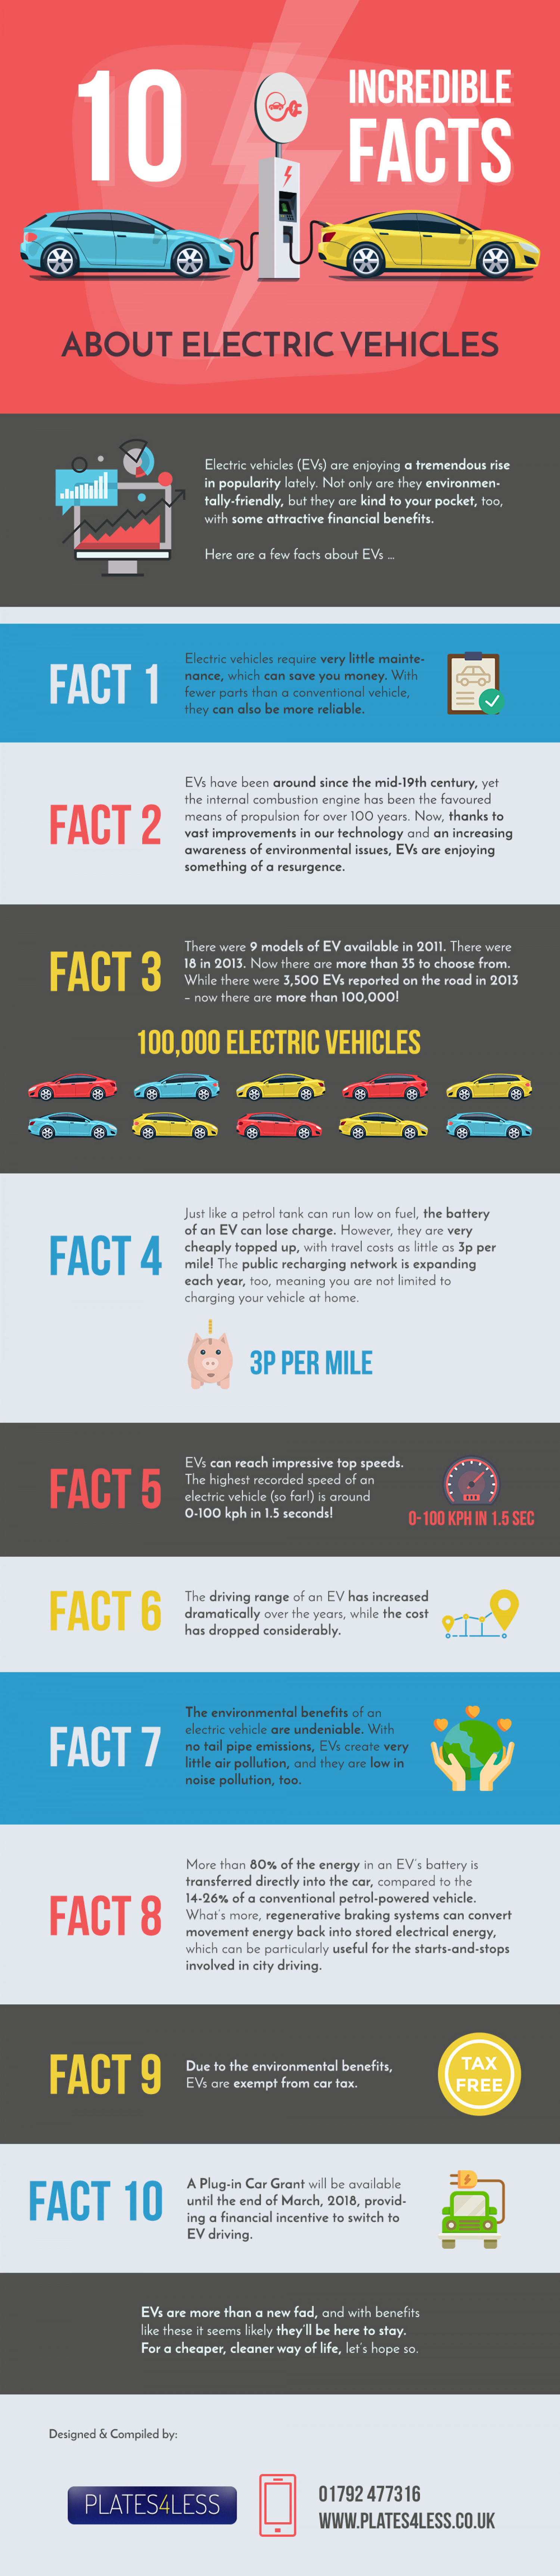 10 Incredible Facts About Electric Vehicles Infographic